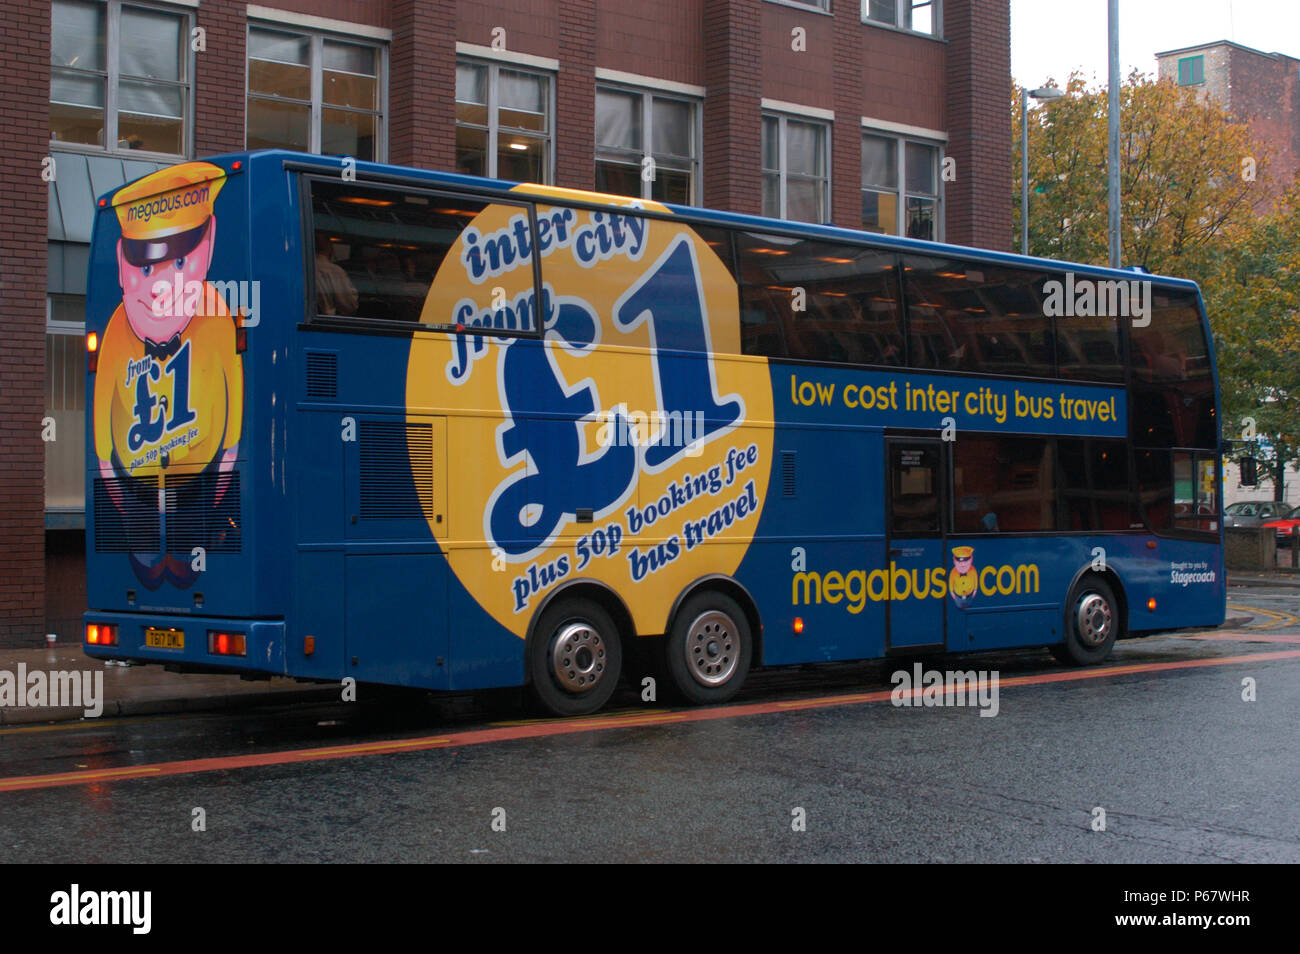 The Manchester - London Megabus stands at the Charlton St stop awaiting departure from Manchester. October 2004. - Stock Image